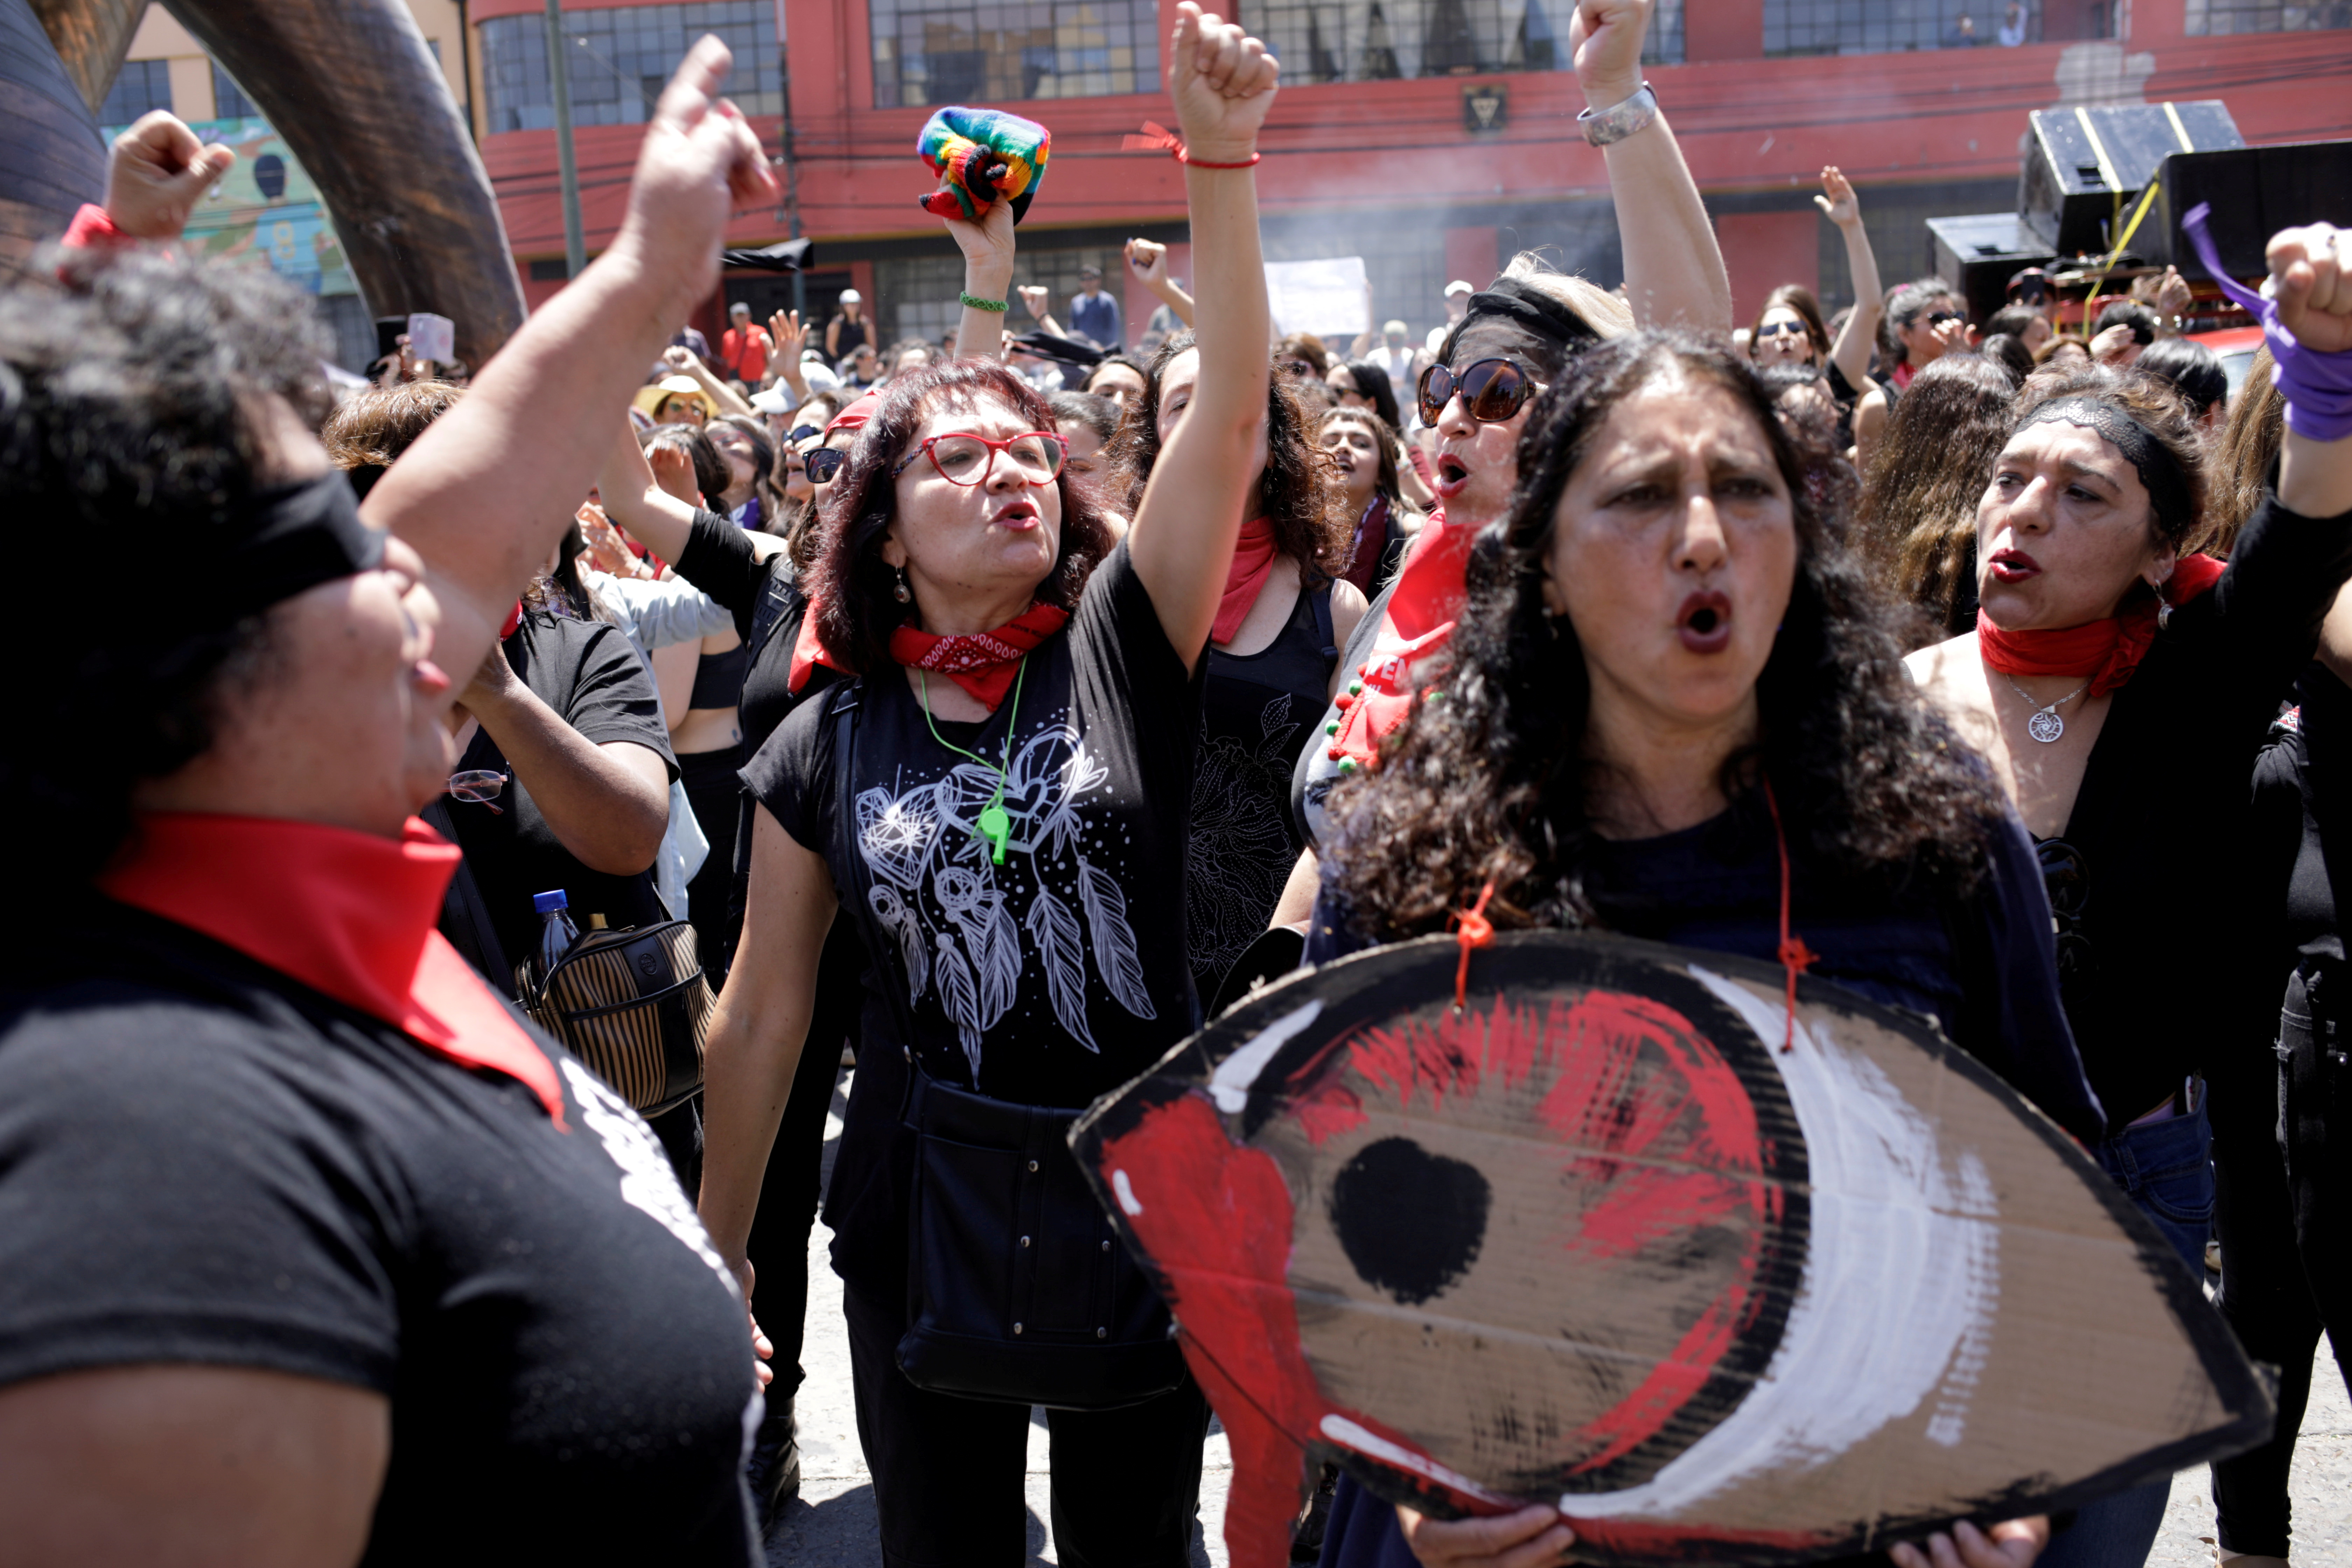 Women take part in a performance of Las Tesis feminist collective while lawmakers debate and vote on an impeachment motion against Chile's President Sebastian Pinera, in Valparaiso, Chile December 12, 2019. REUTERS/Andres Martinez Casares/File Photo